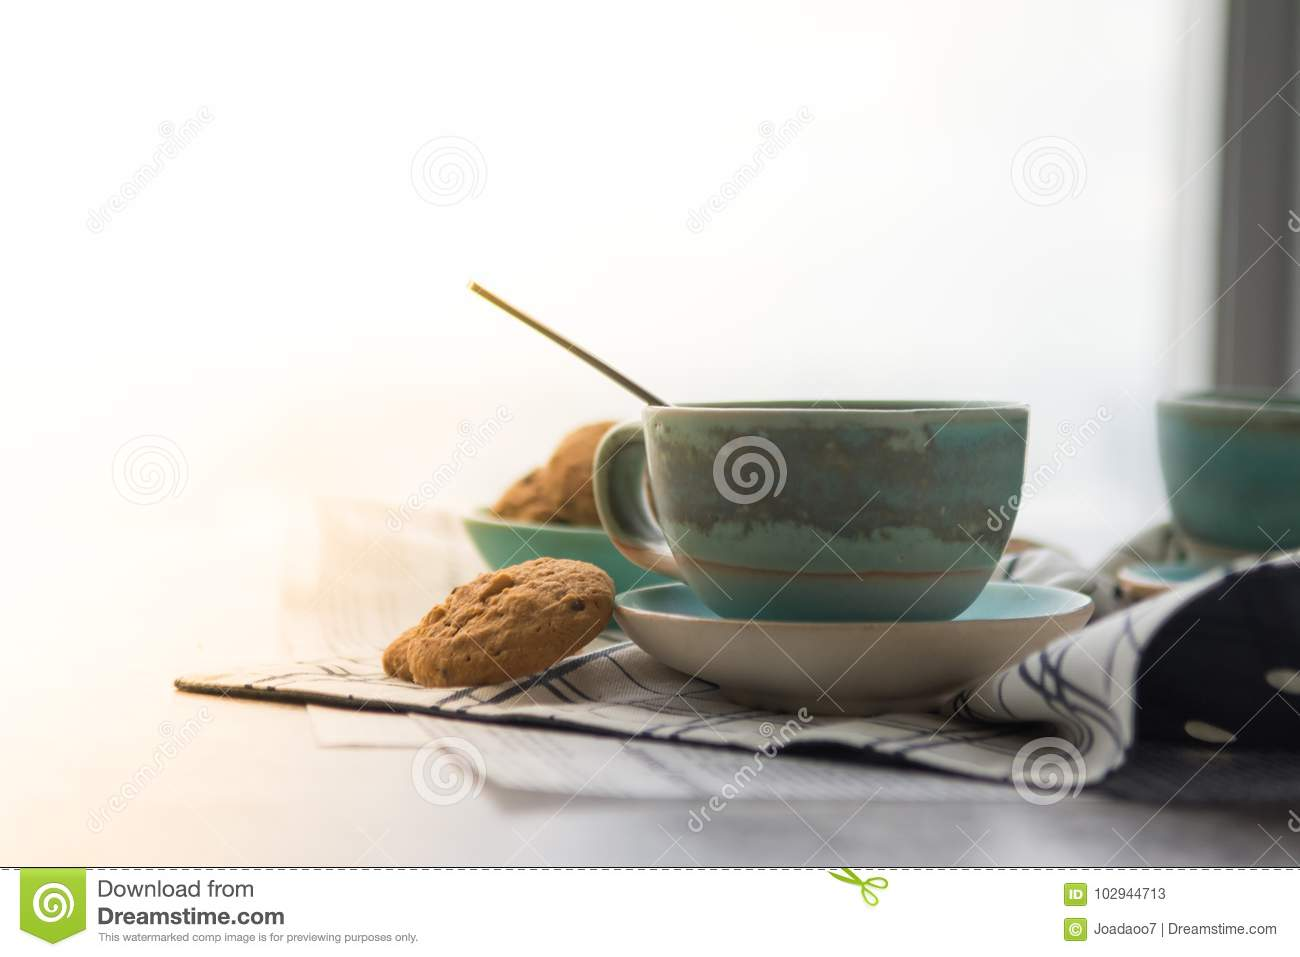 Cup of black coffee with spoon on supported dish on fabric on bl